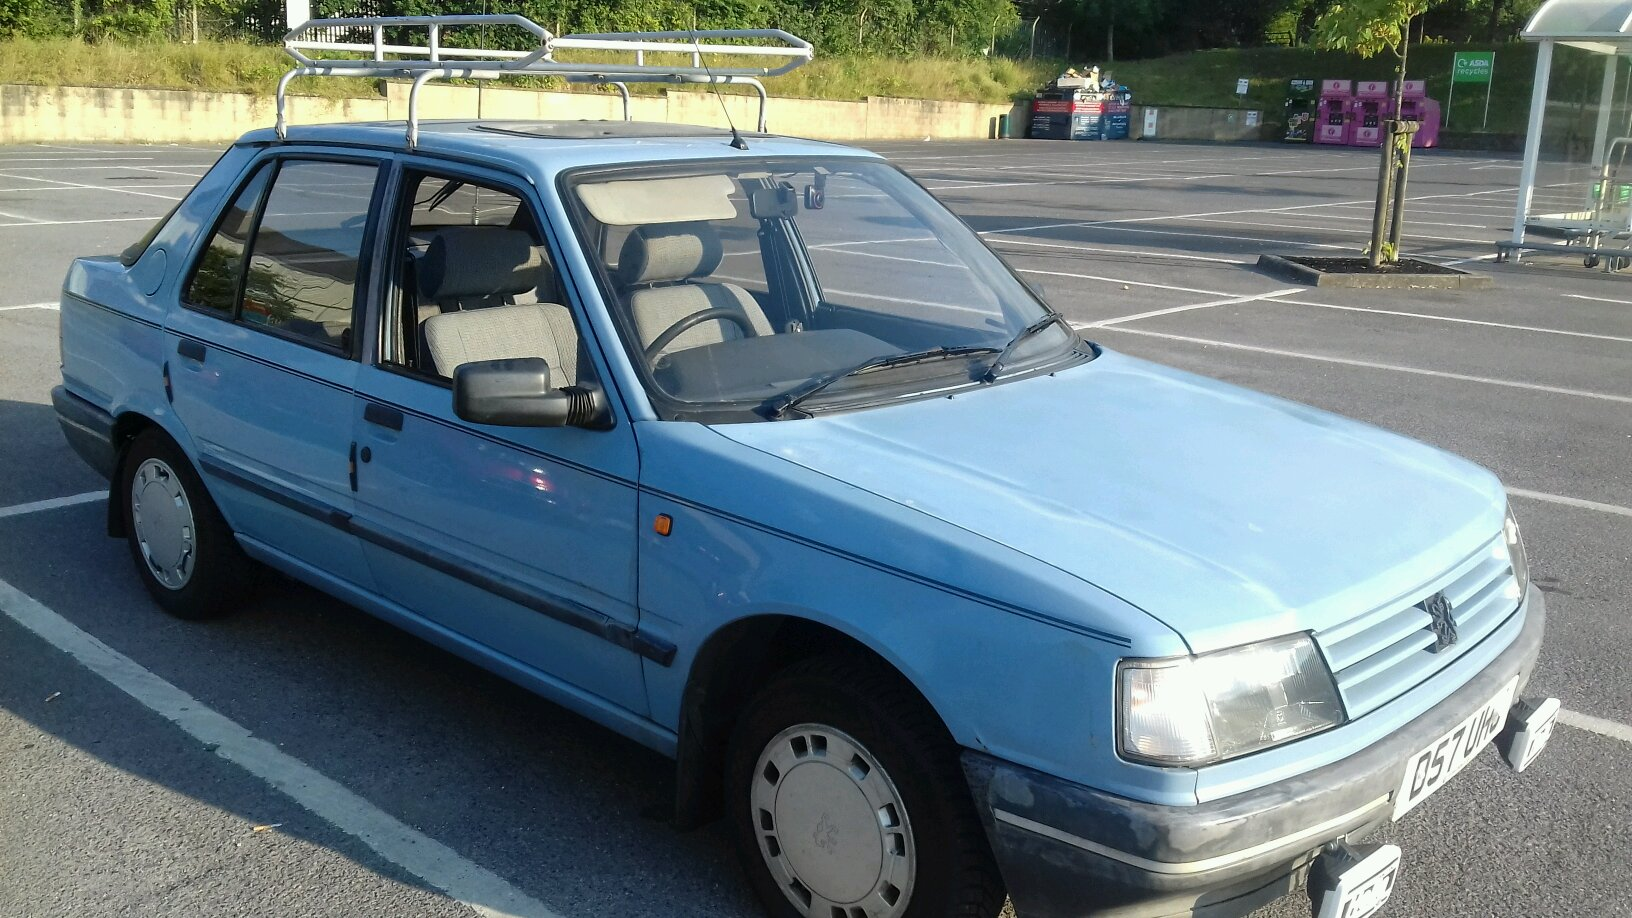 Peugeot 309 Gr Out After Having Spent A Few Months In The Garage Sorting Running Problems